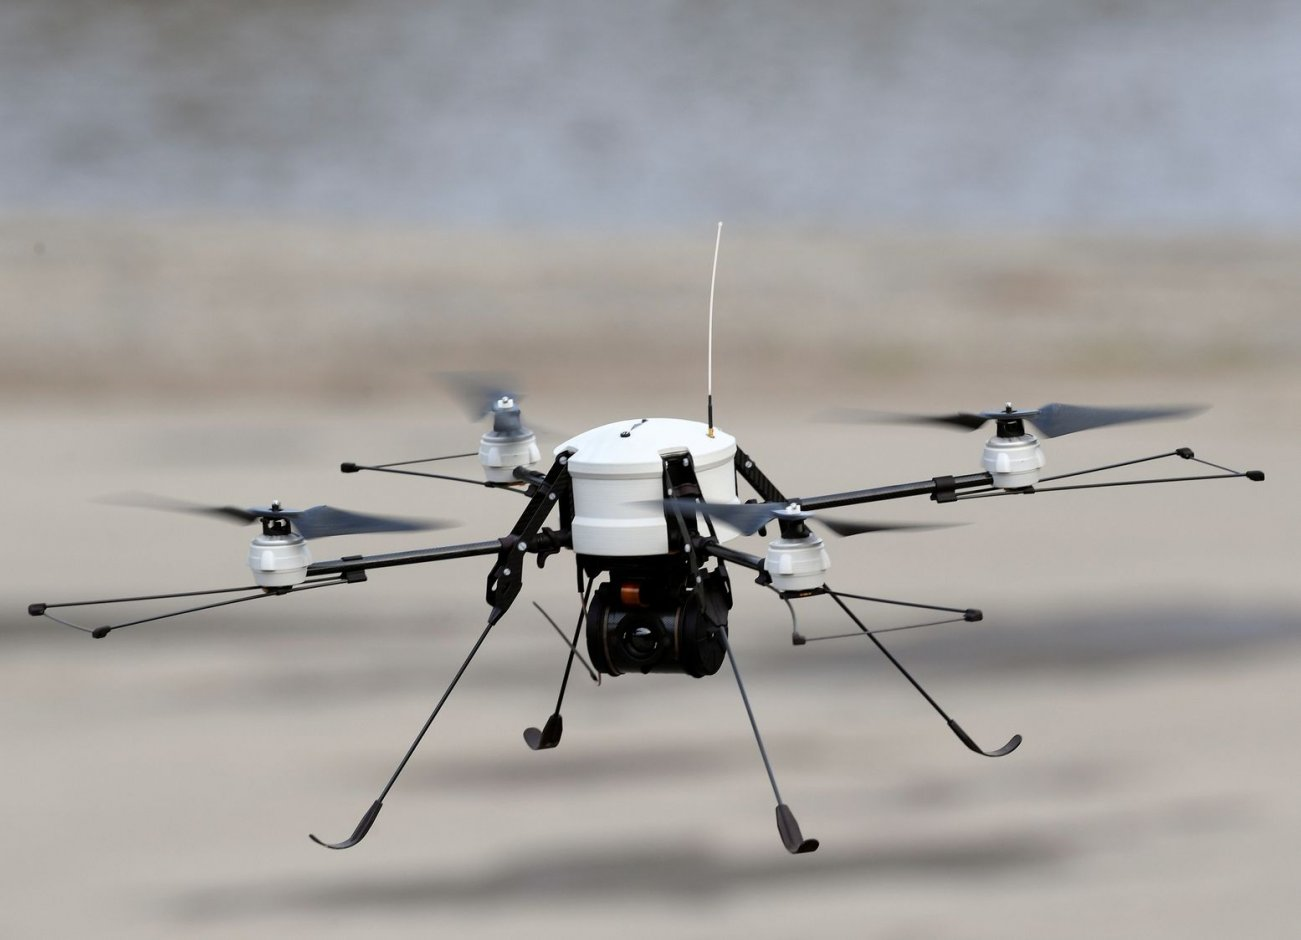 The Army Wants to Kill Drones With... Drones?